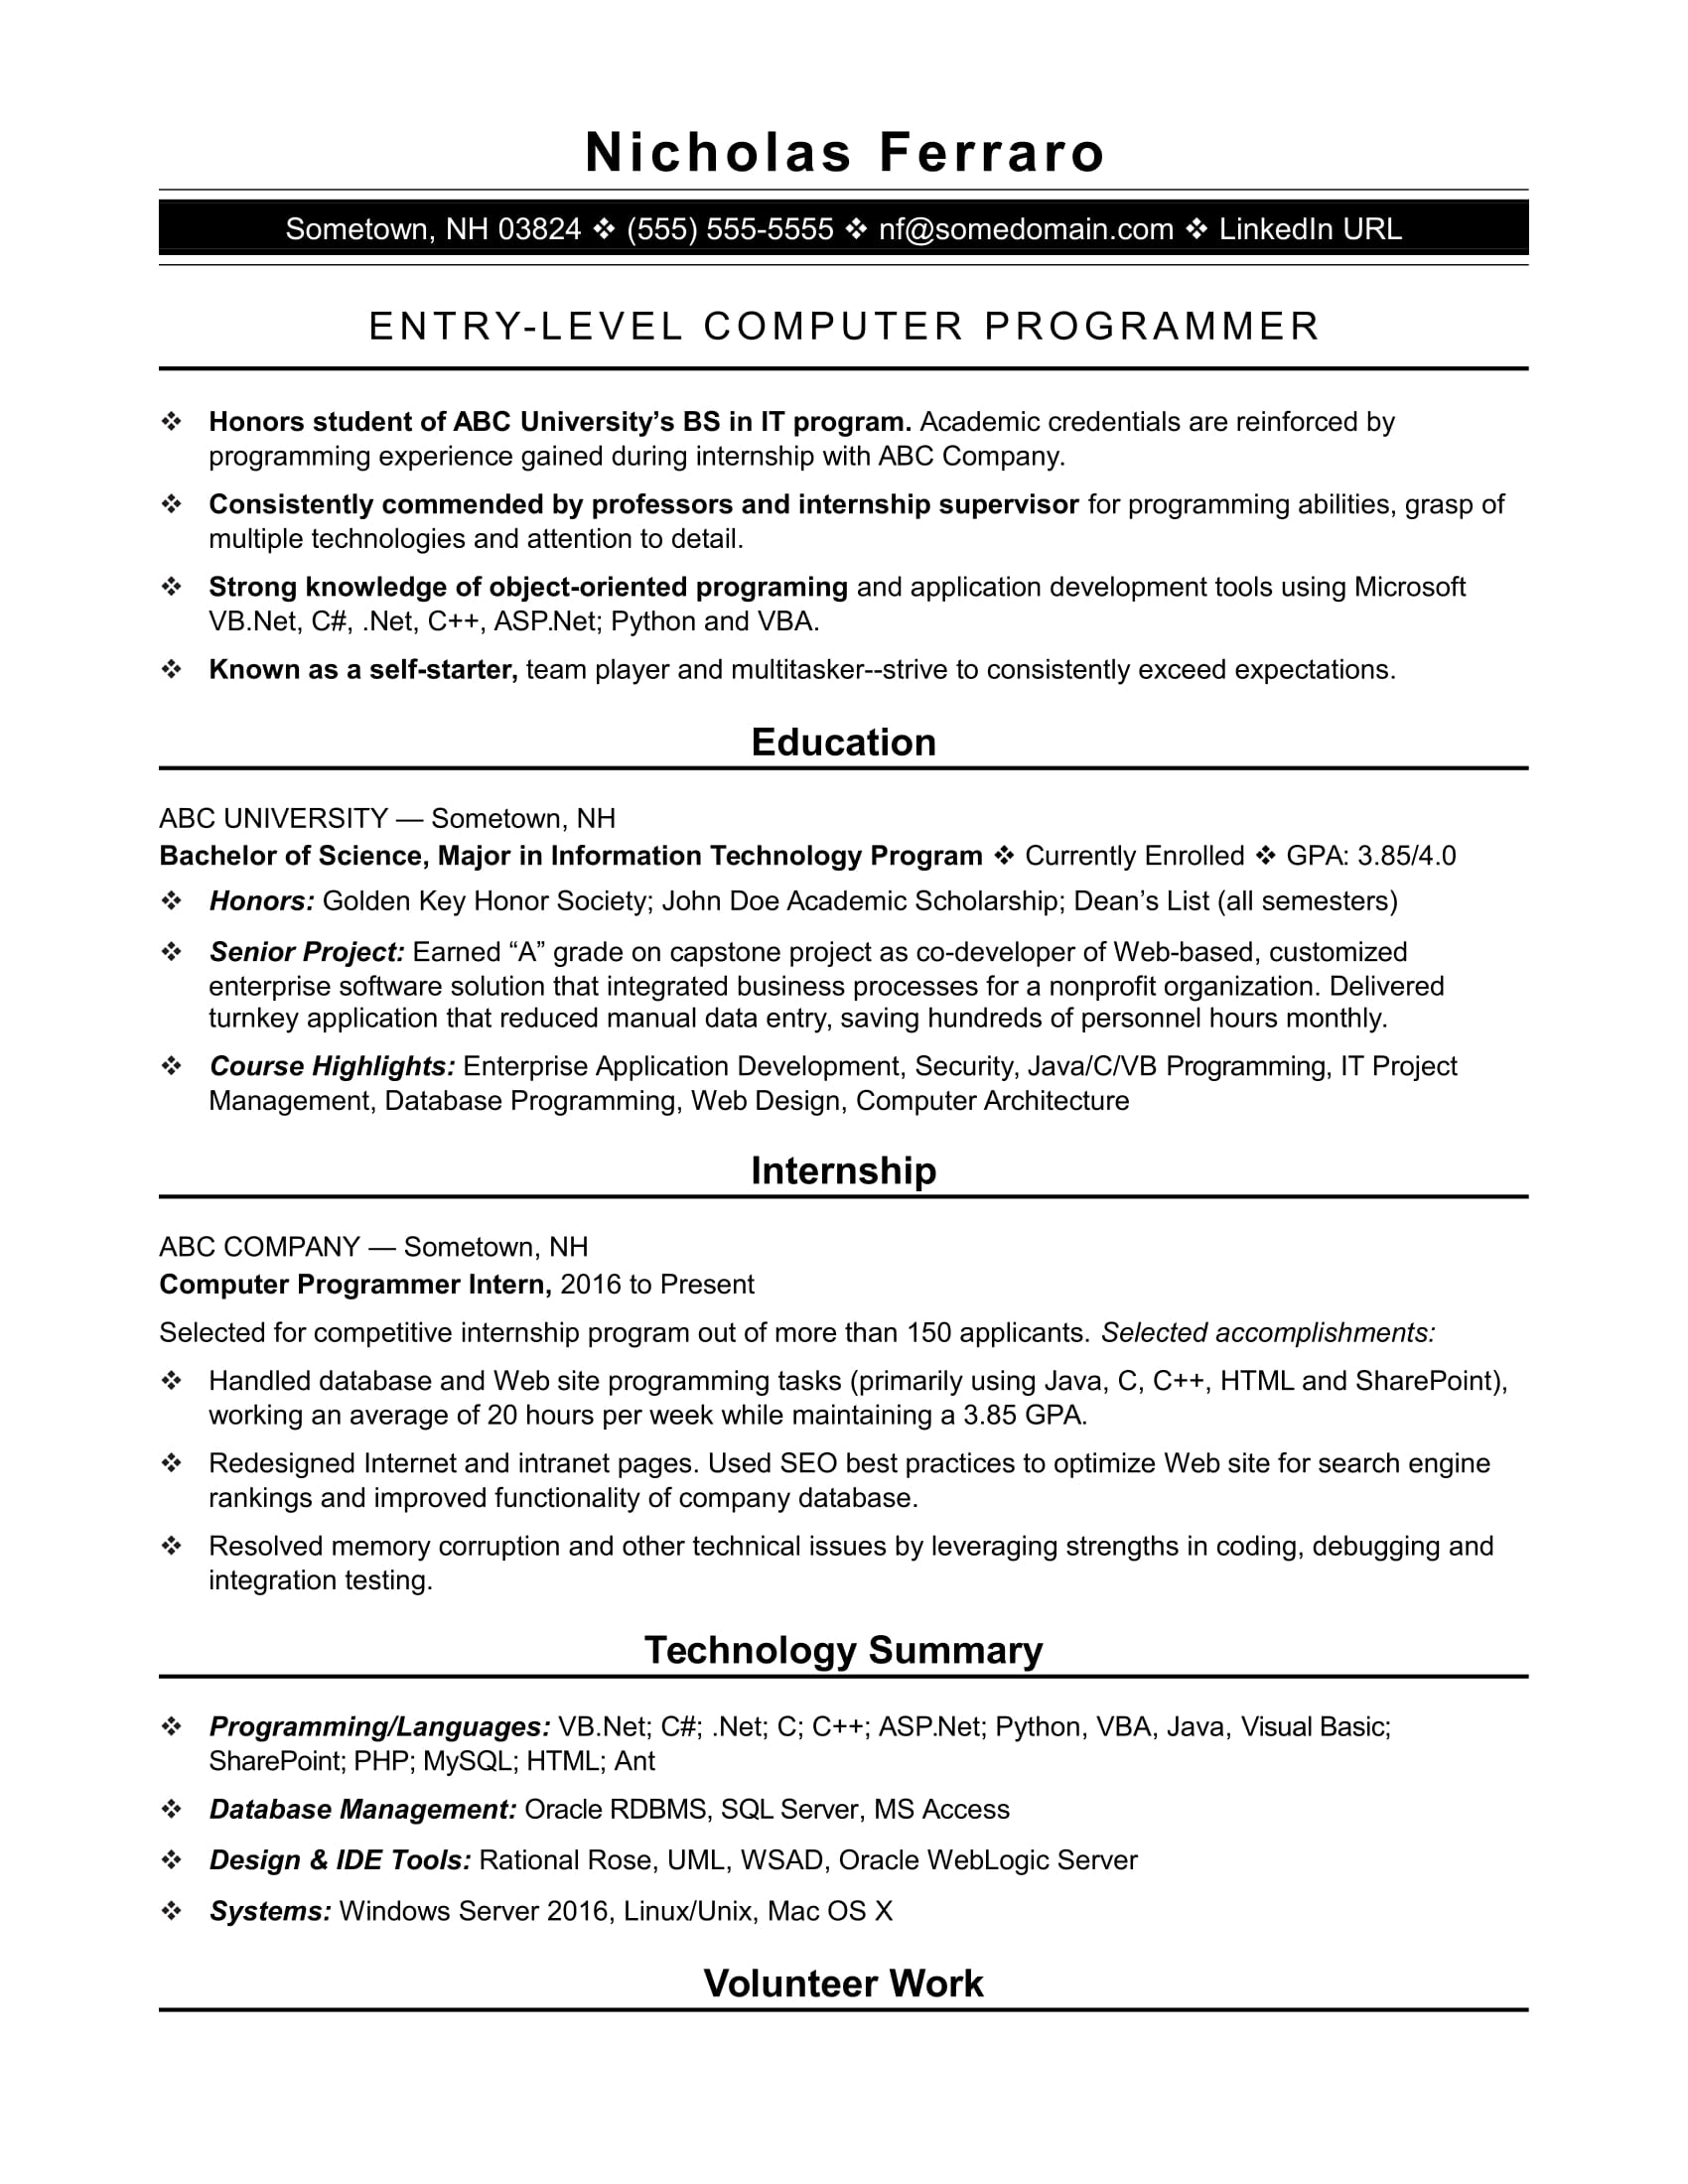 Python Developer Resume Sample Sample Resume For An Entry Level Computer Programmer Monster